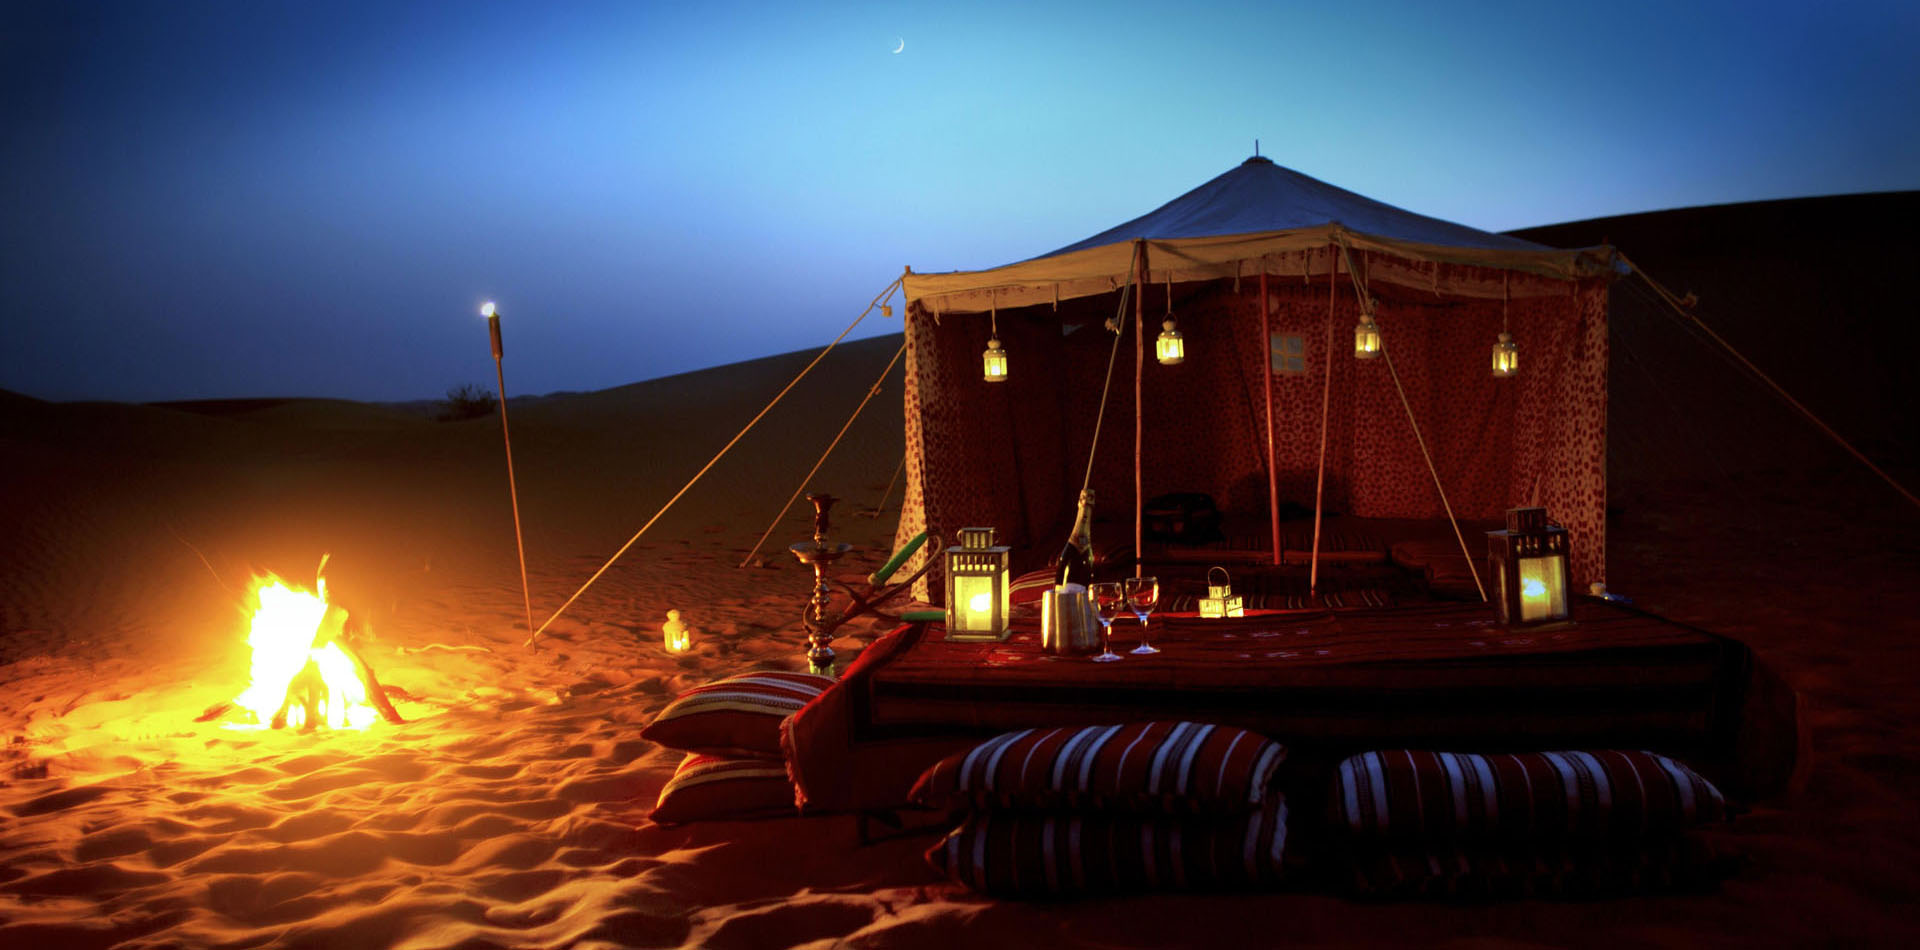 Things to do in Dubai Desert Safari